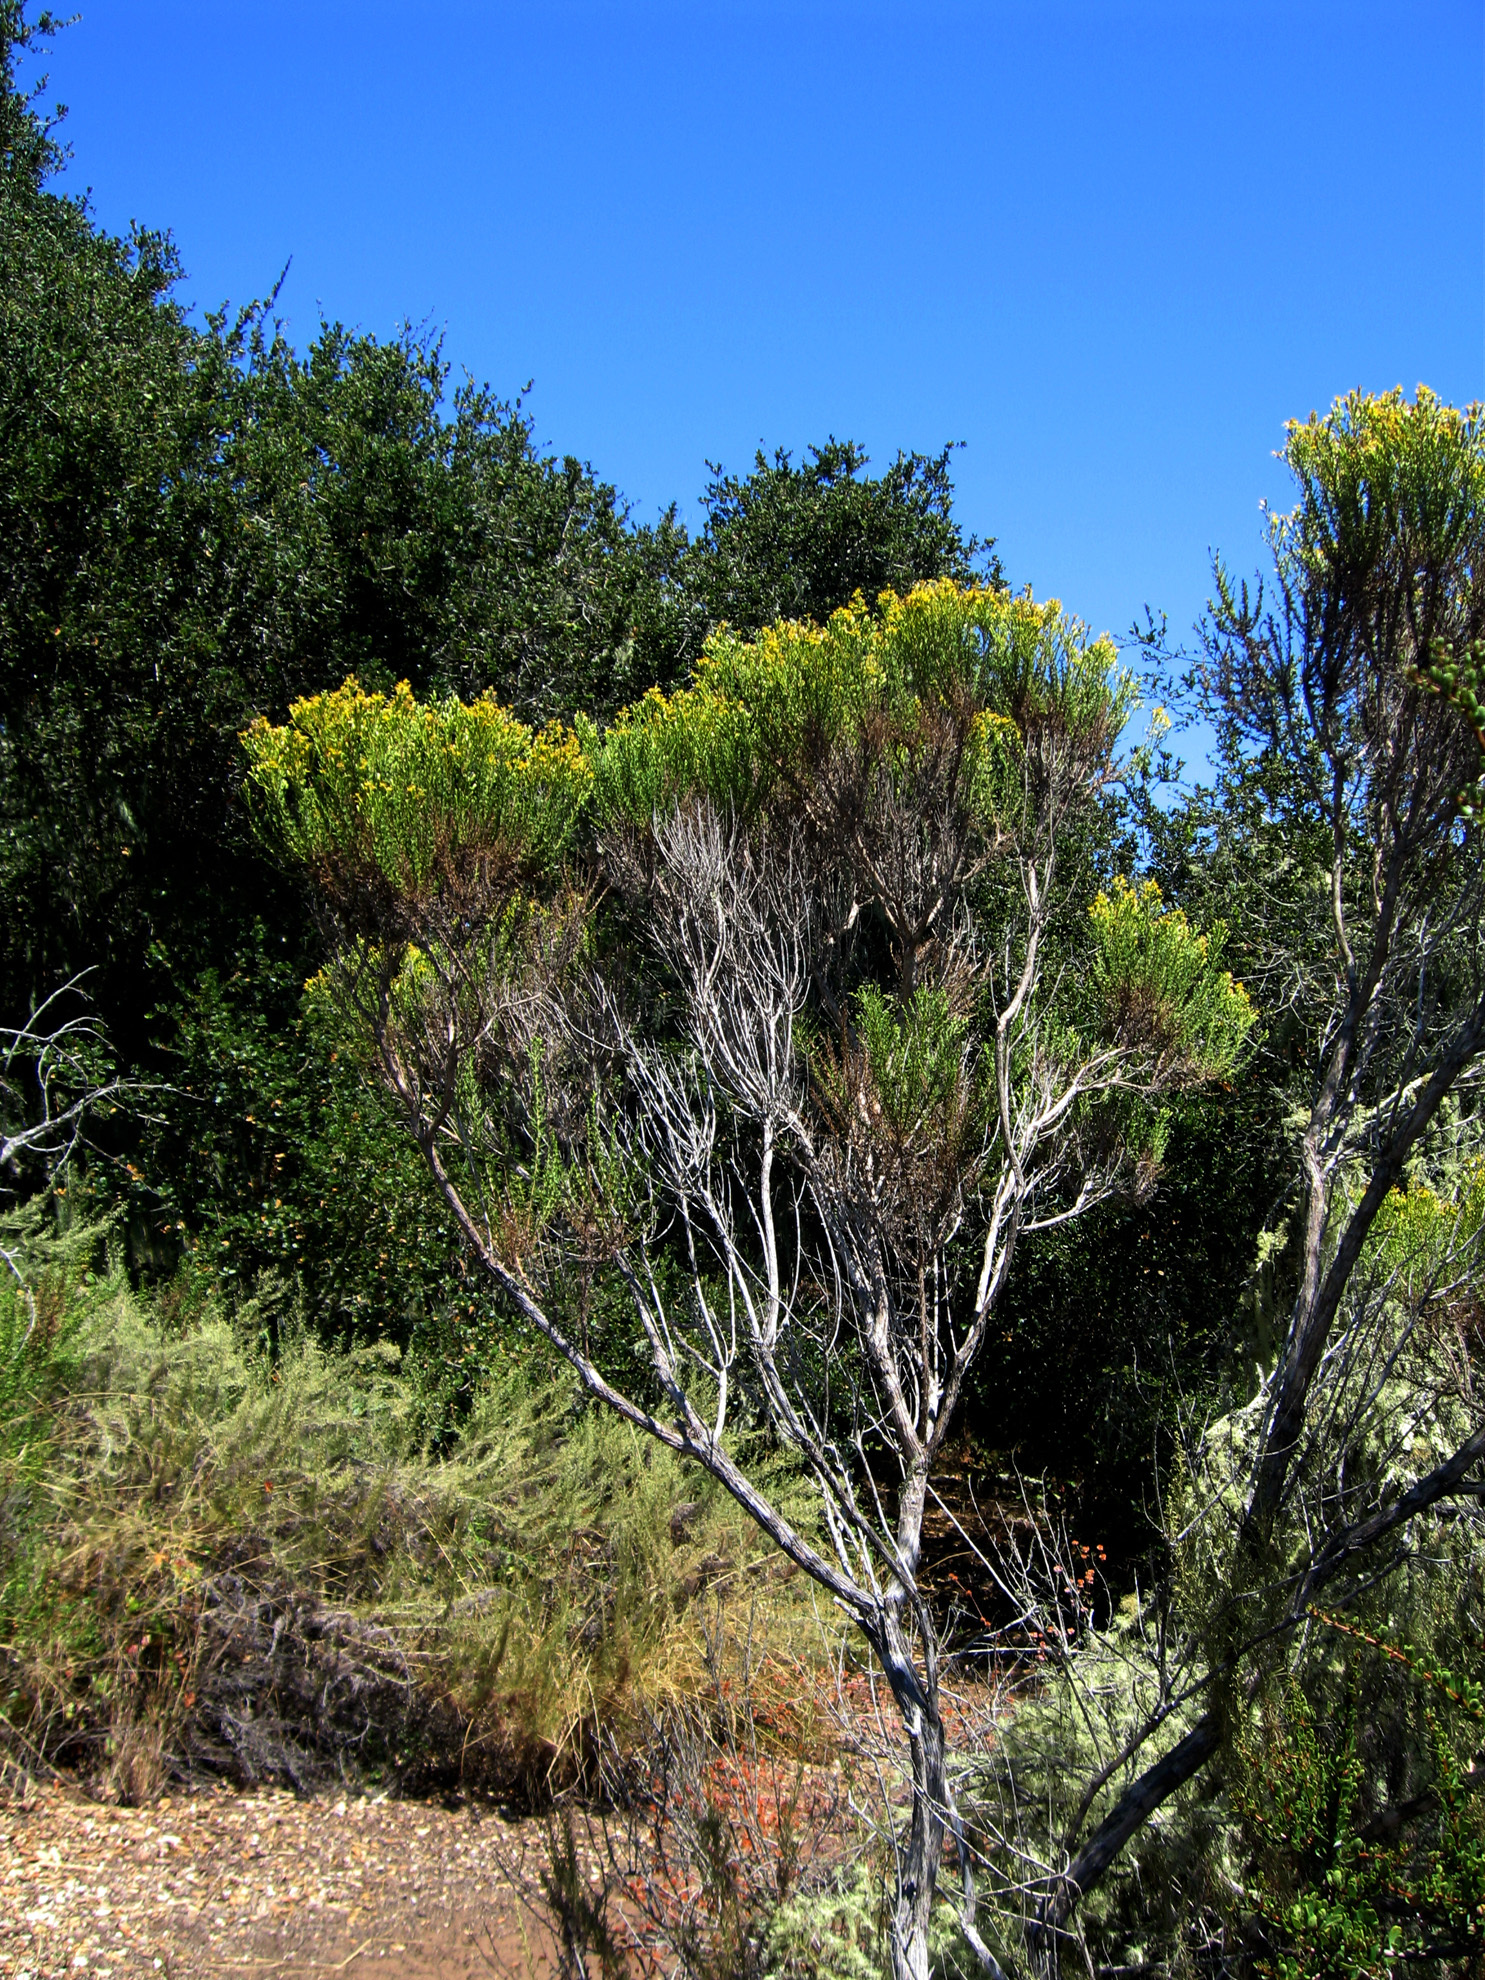 Image of Chaparral Broom